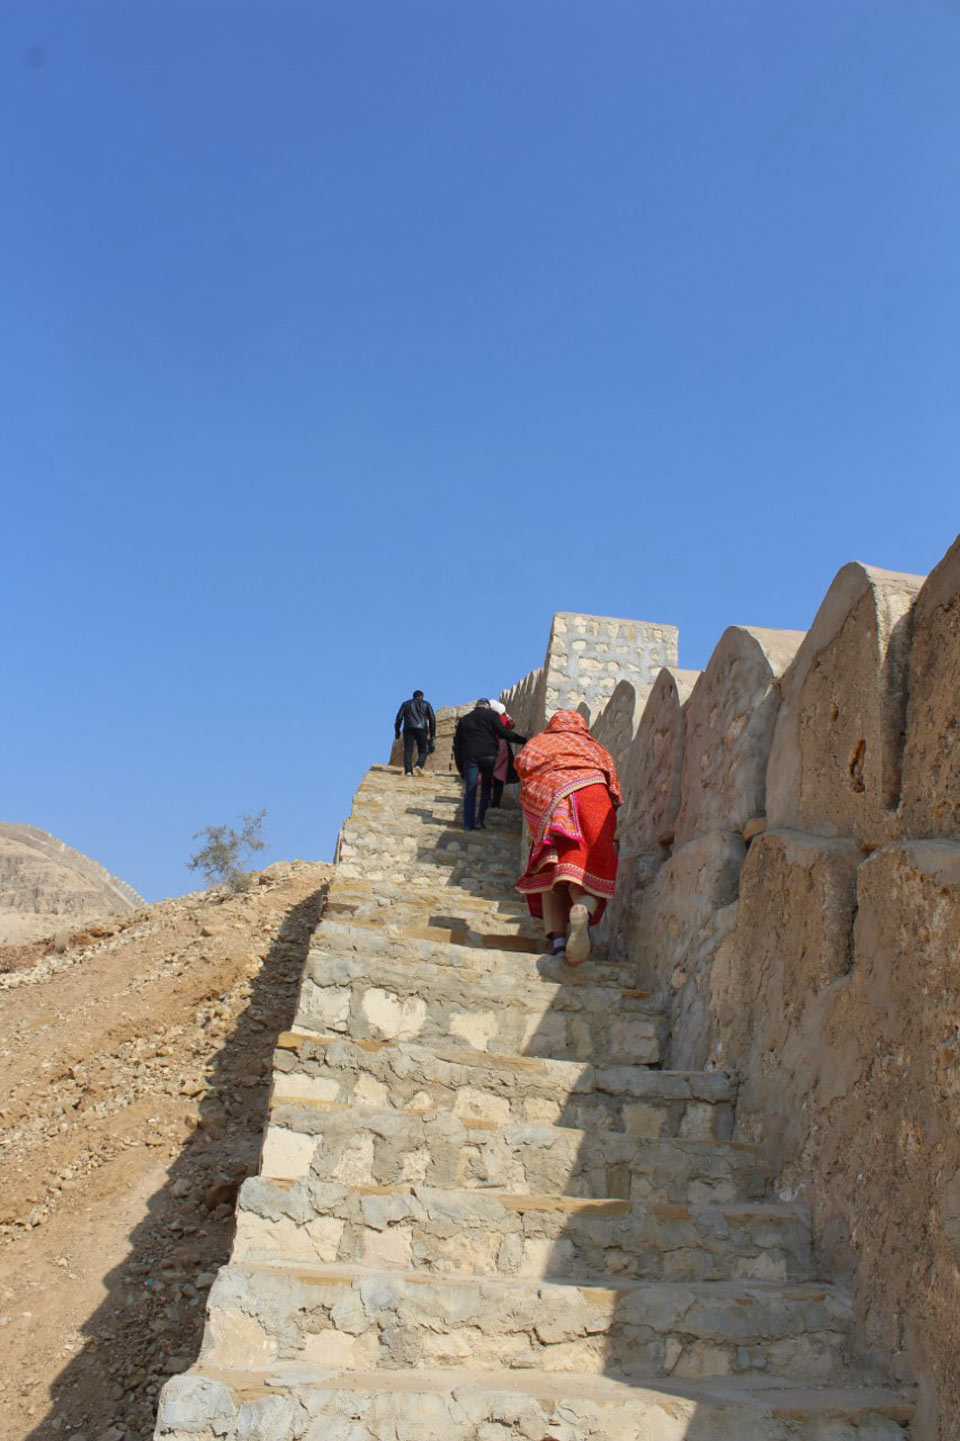 The lady members of our group are going up using the stairs of the Wall of Rani Kot Fort